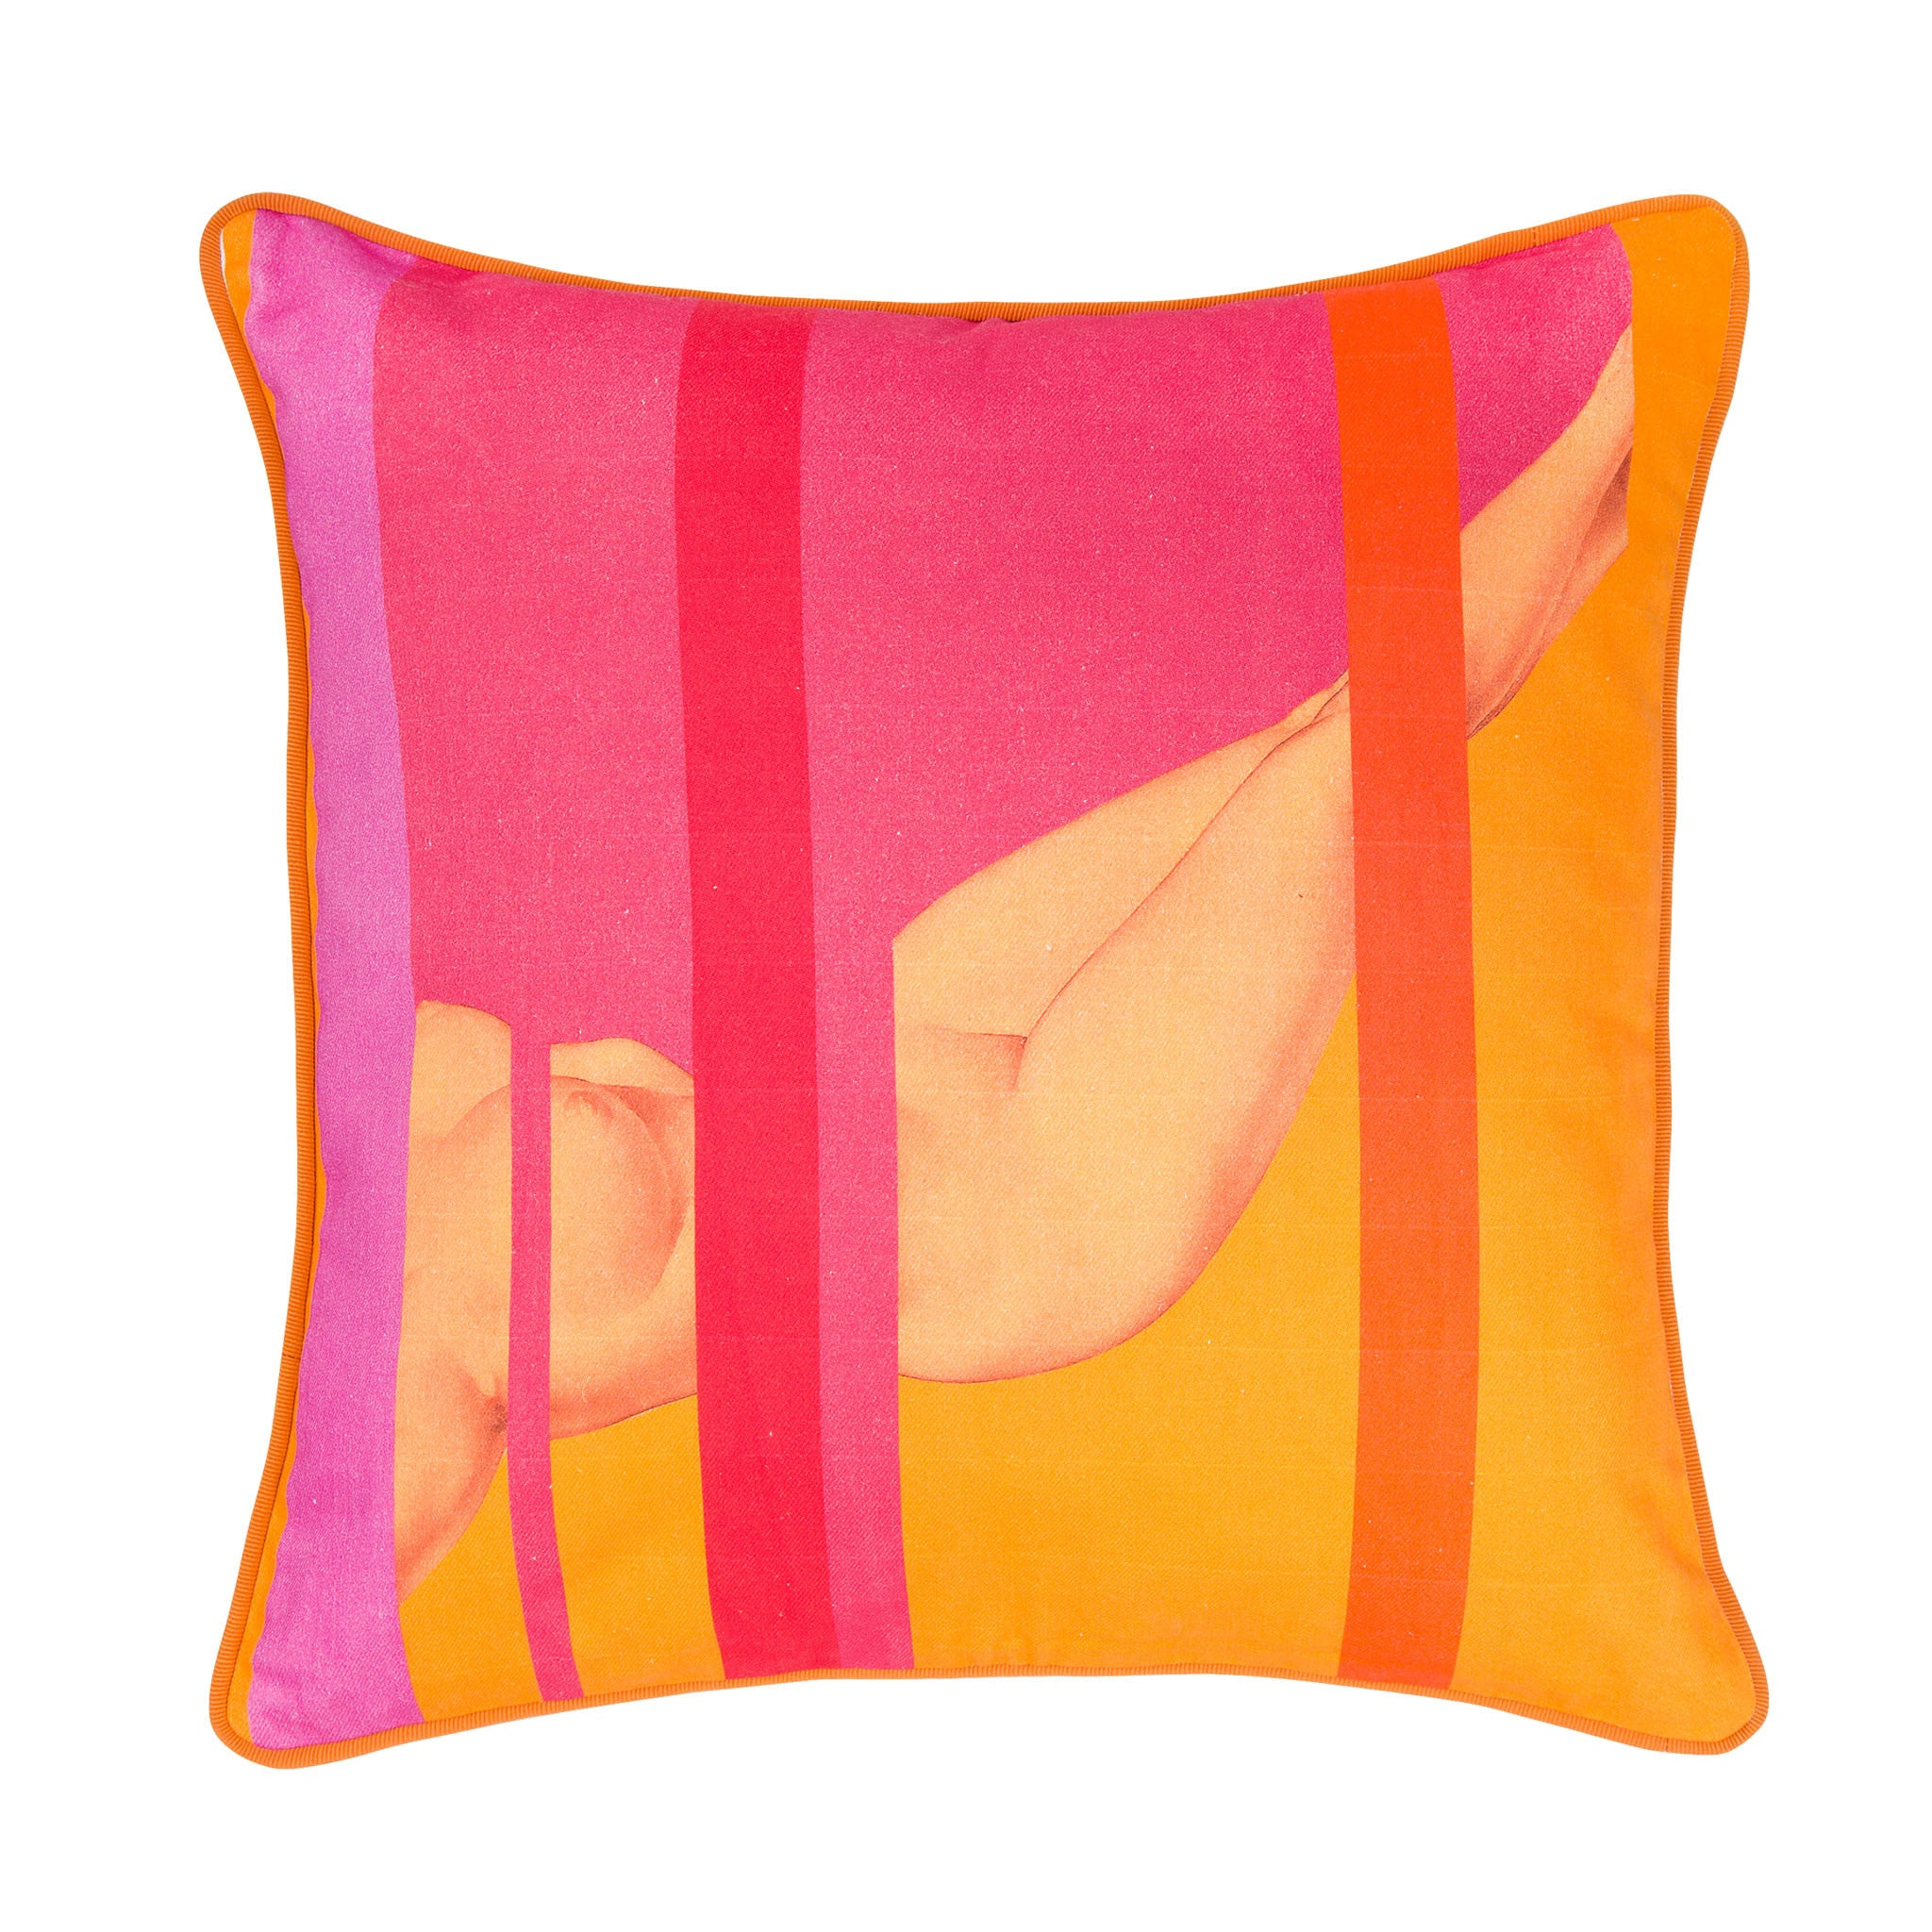 Cotton orange & pink reclining nude print cushion - Bivain - 1